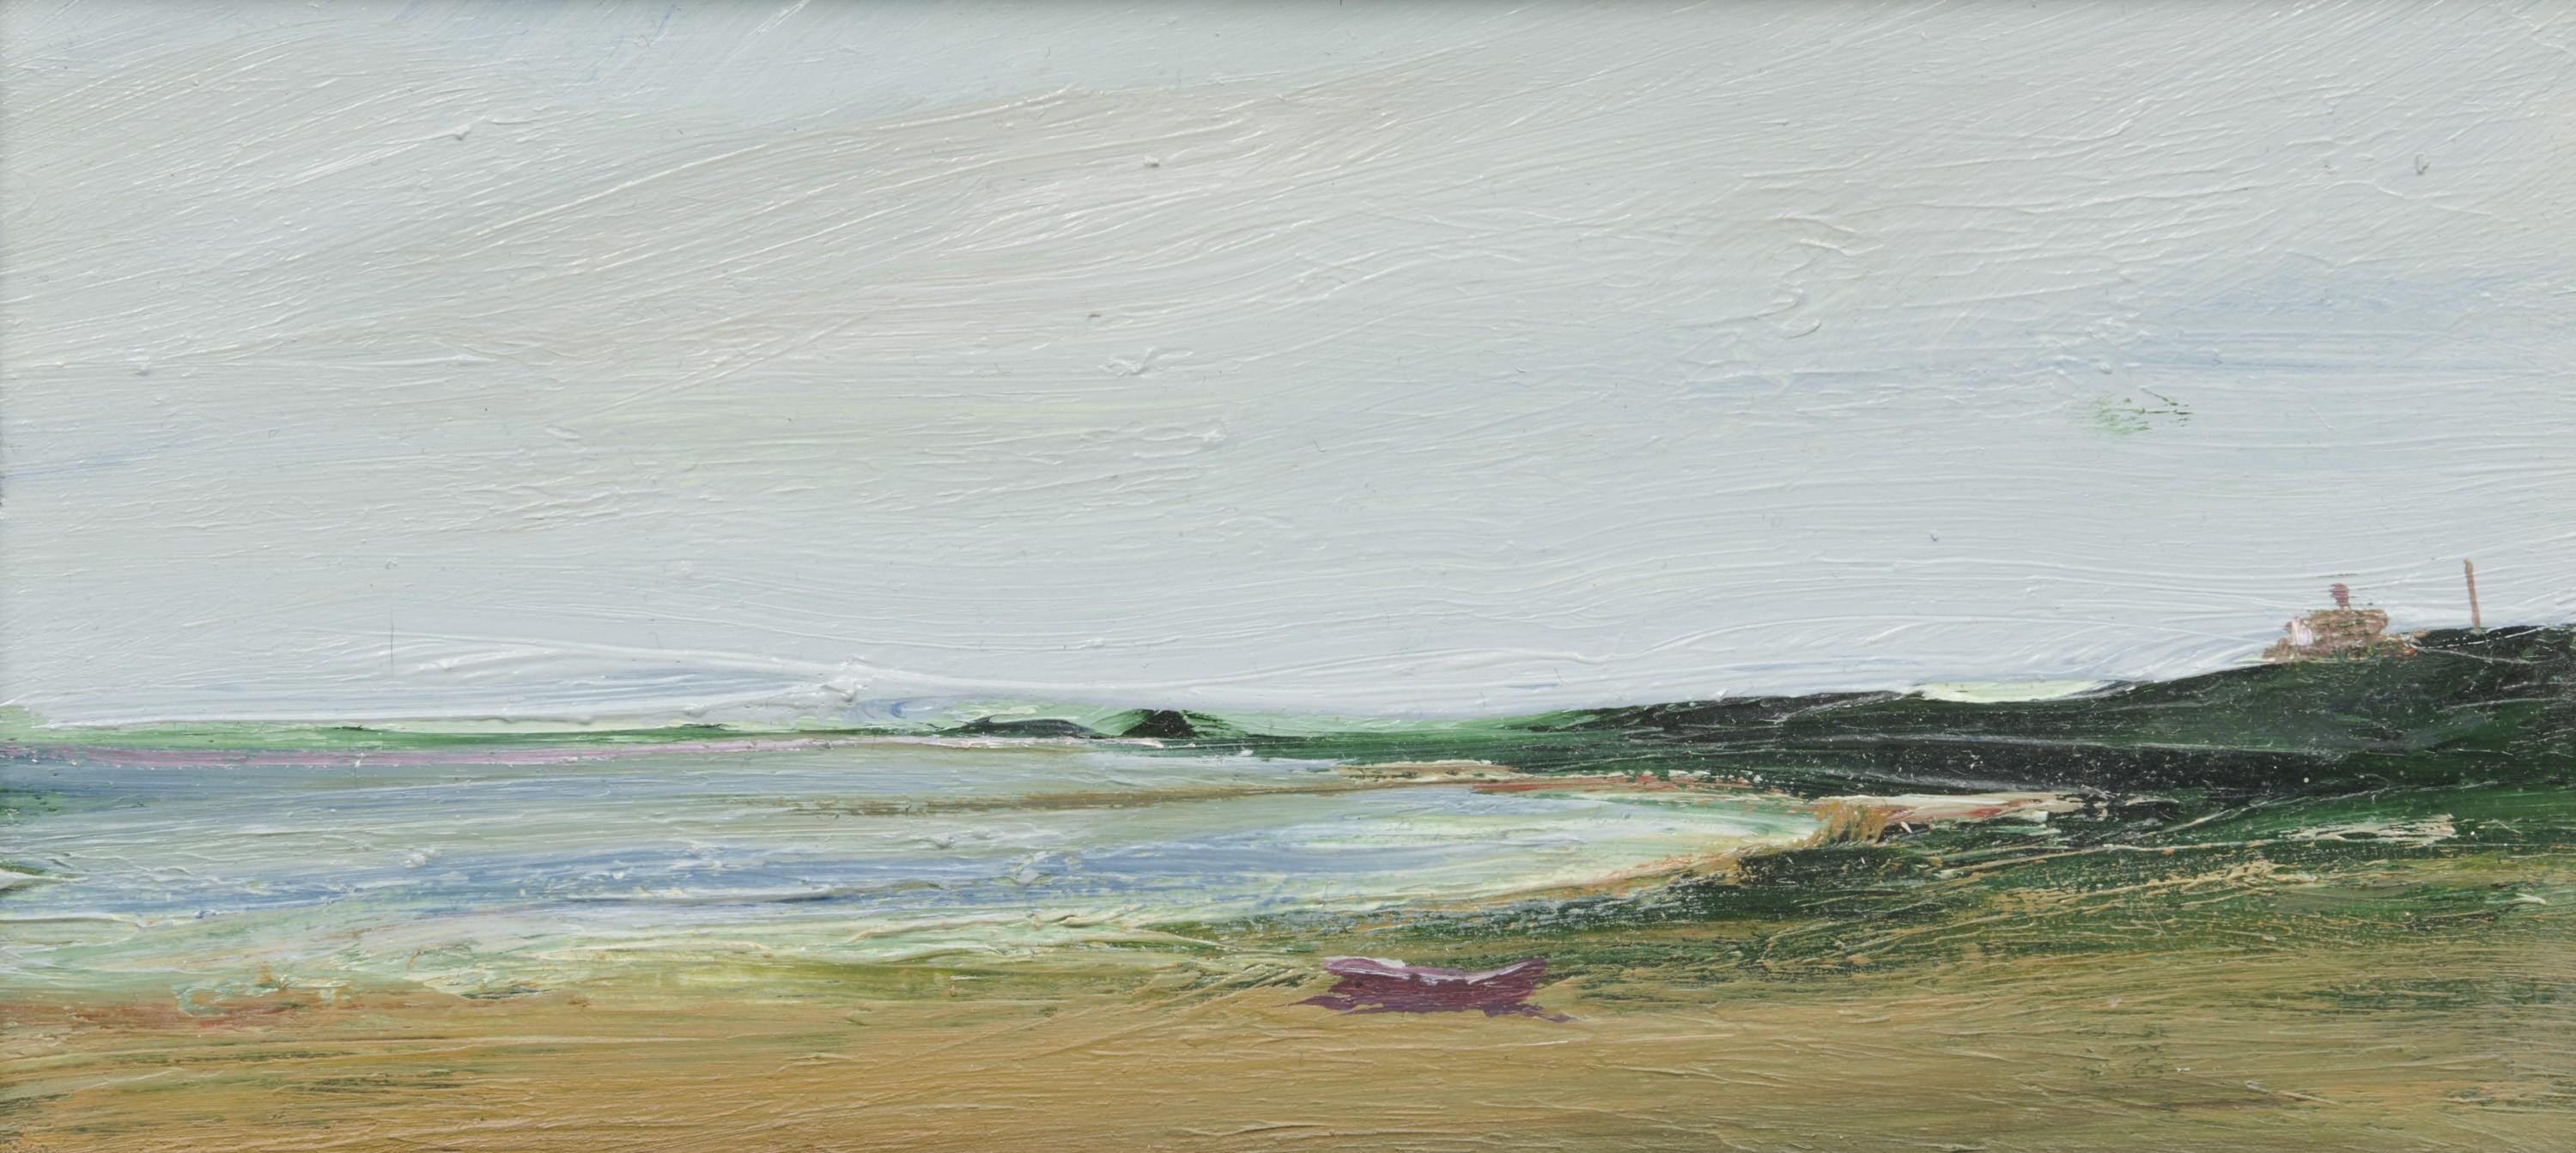 ANNE PACKARD, (American, b. 1933), Shoreline with Dinghy, oil on board, 4 x 8 in., frame: 7 1/2 x 11 1/2 in.